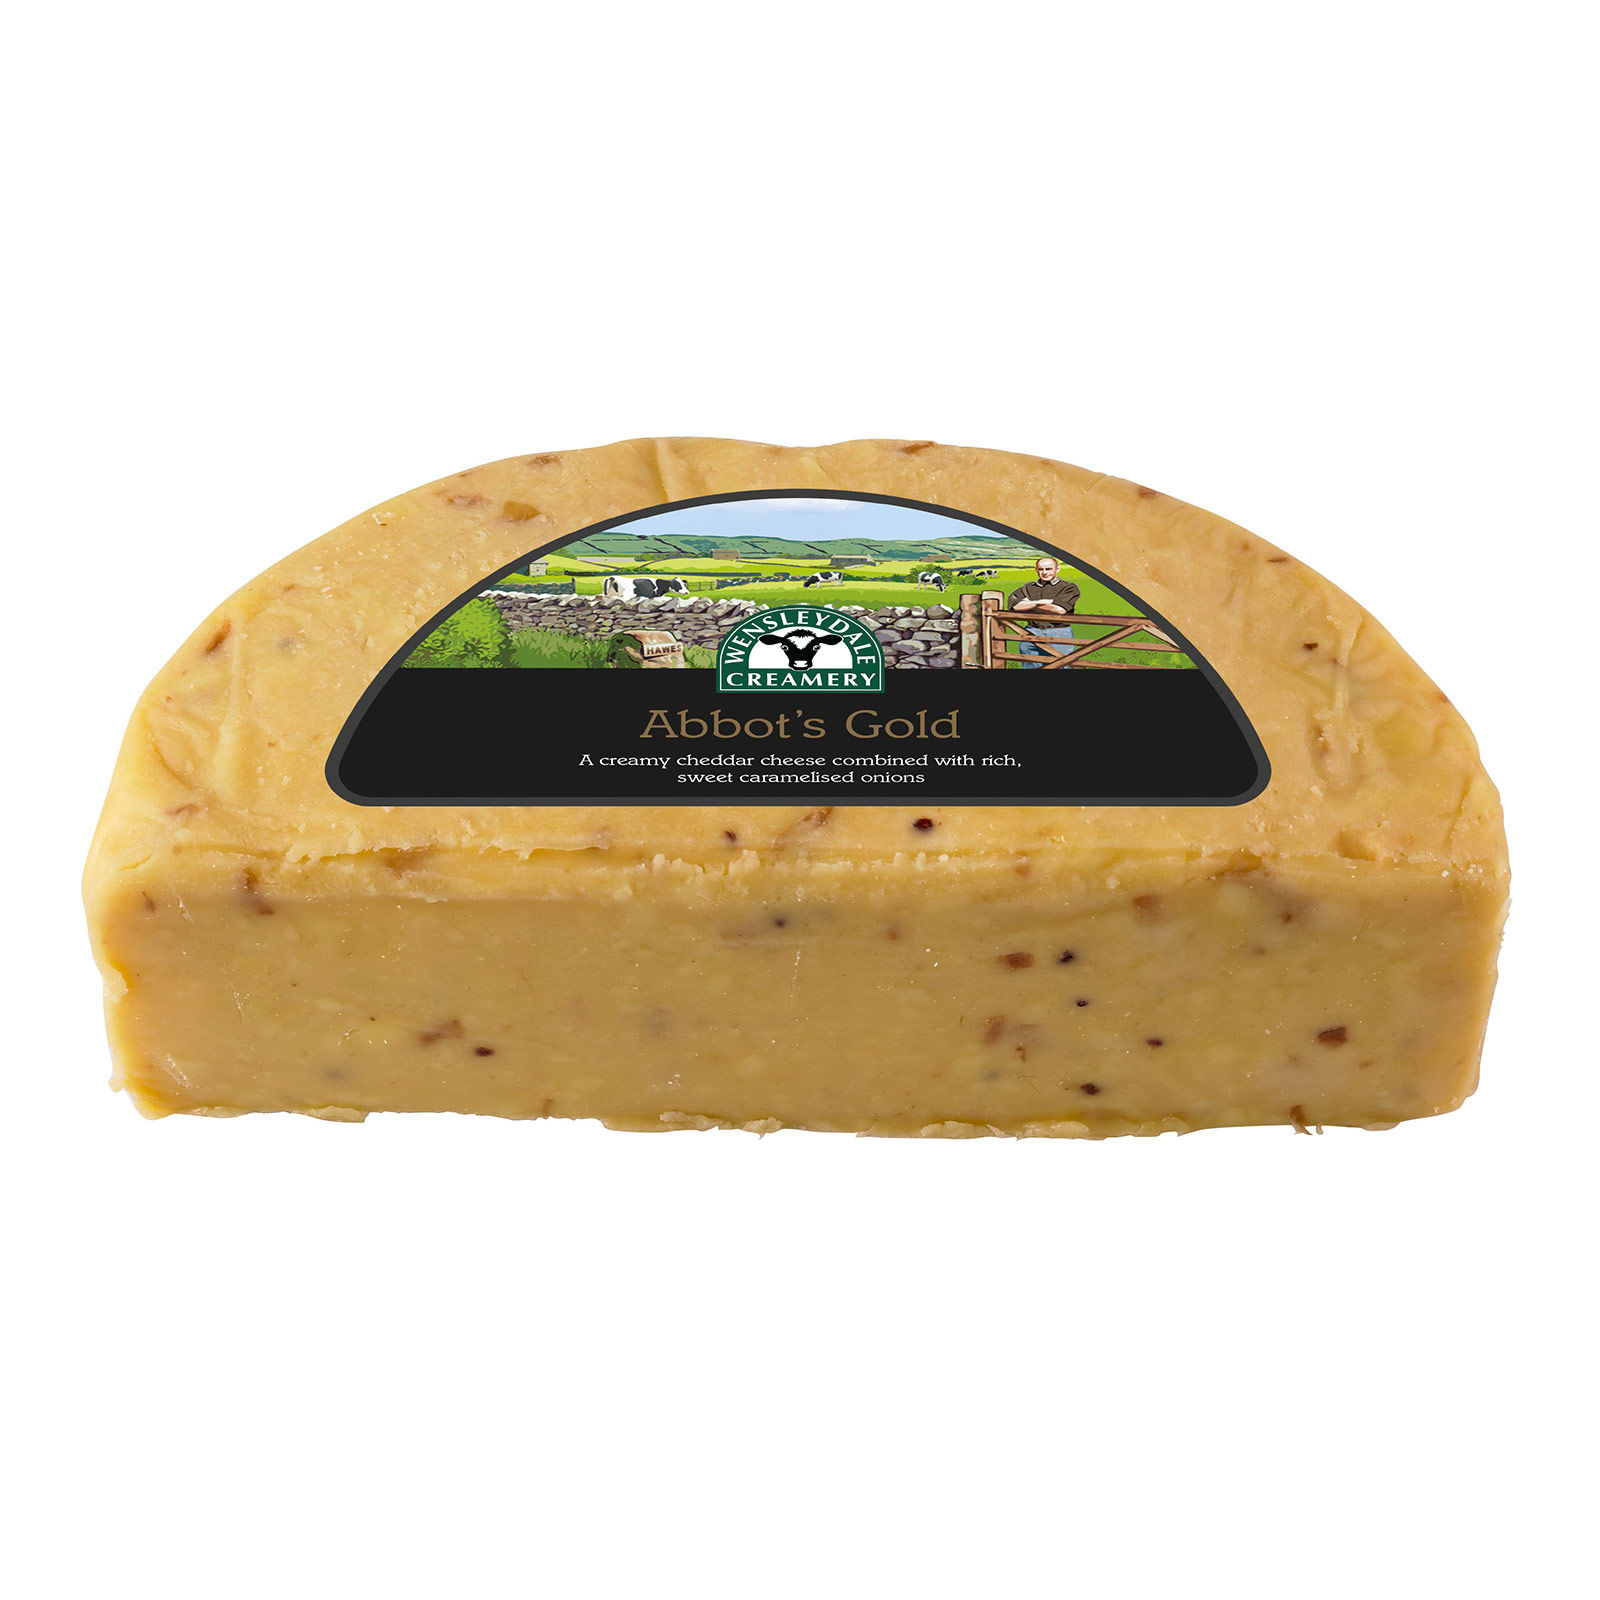 Image result for abbots gold cheese